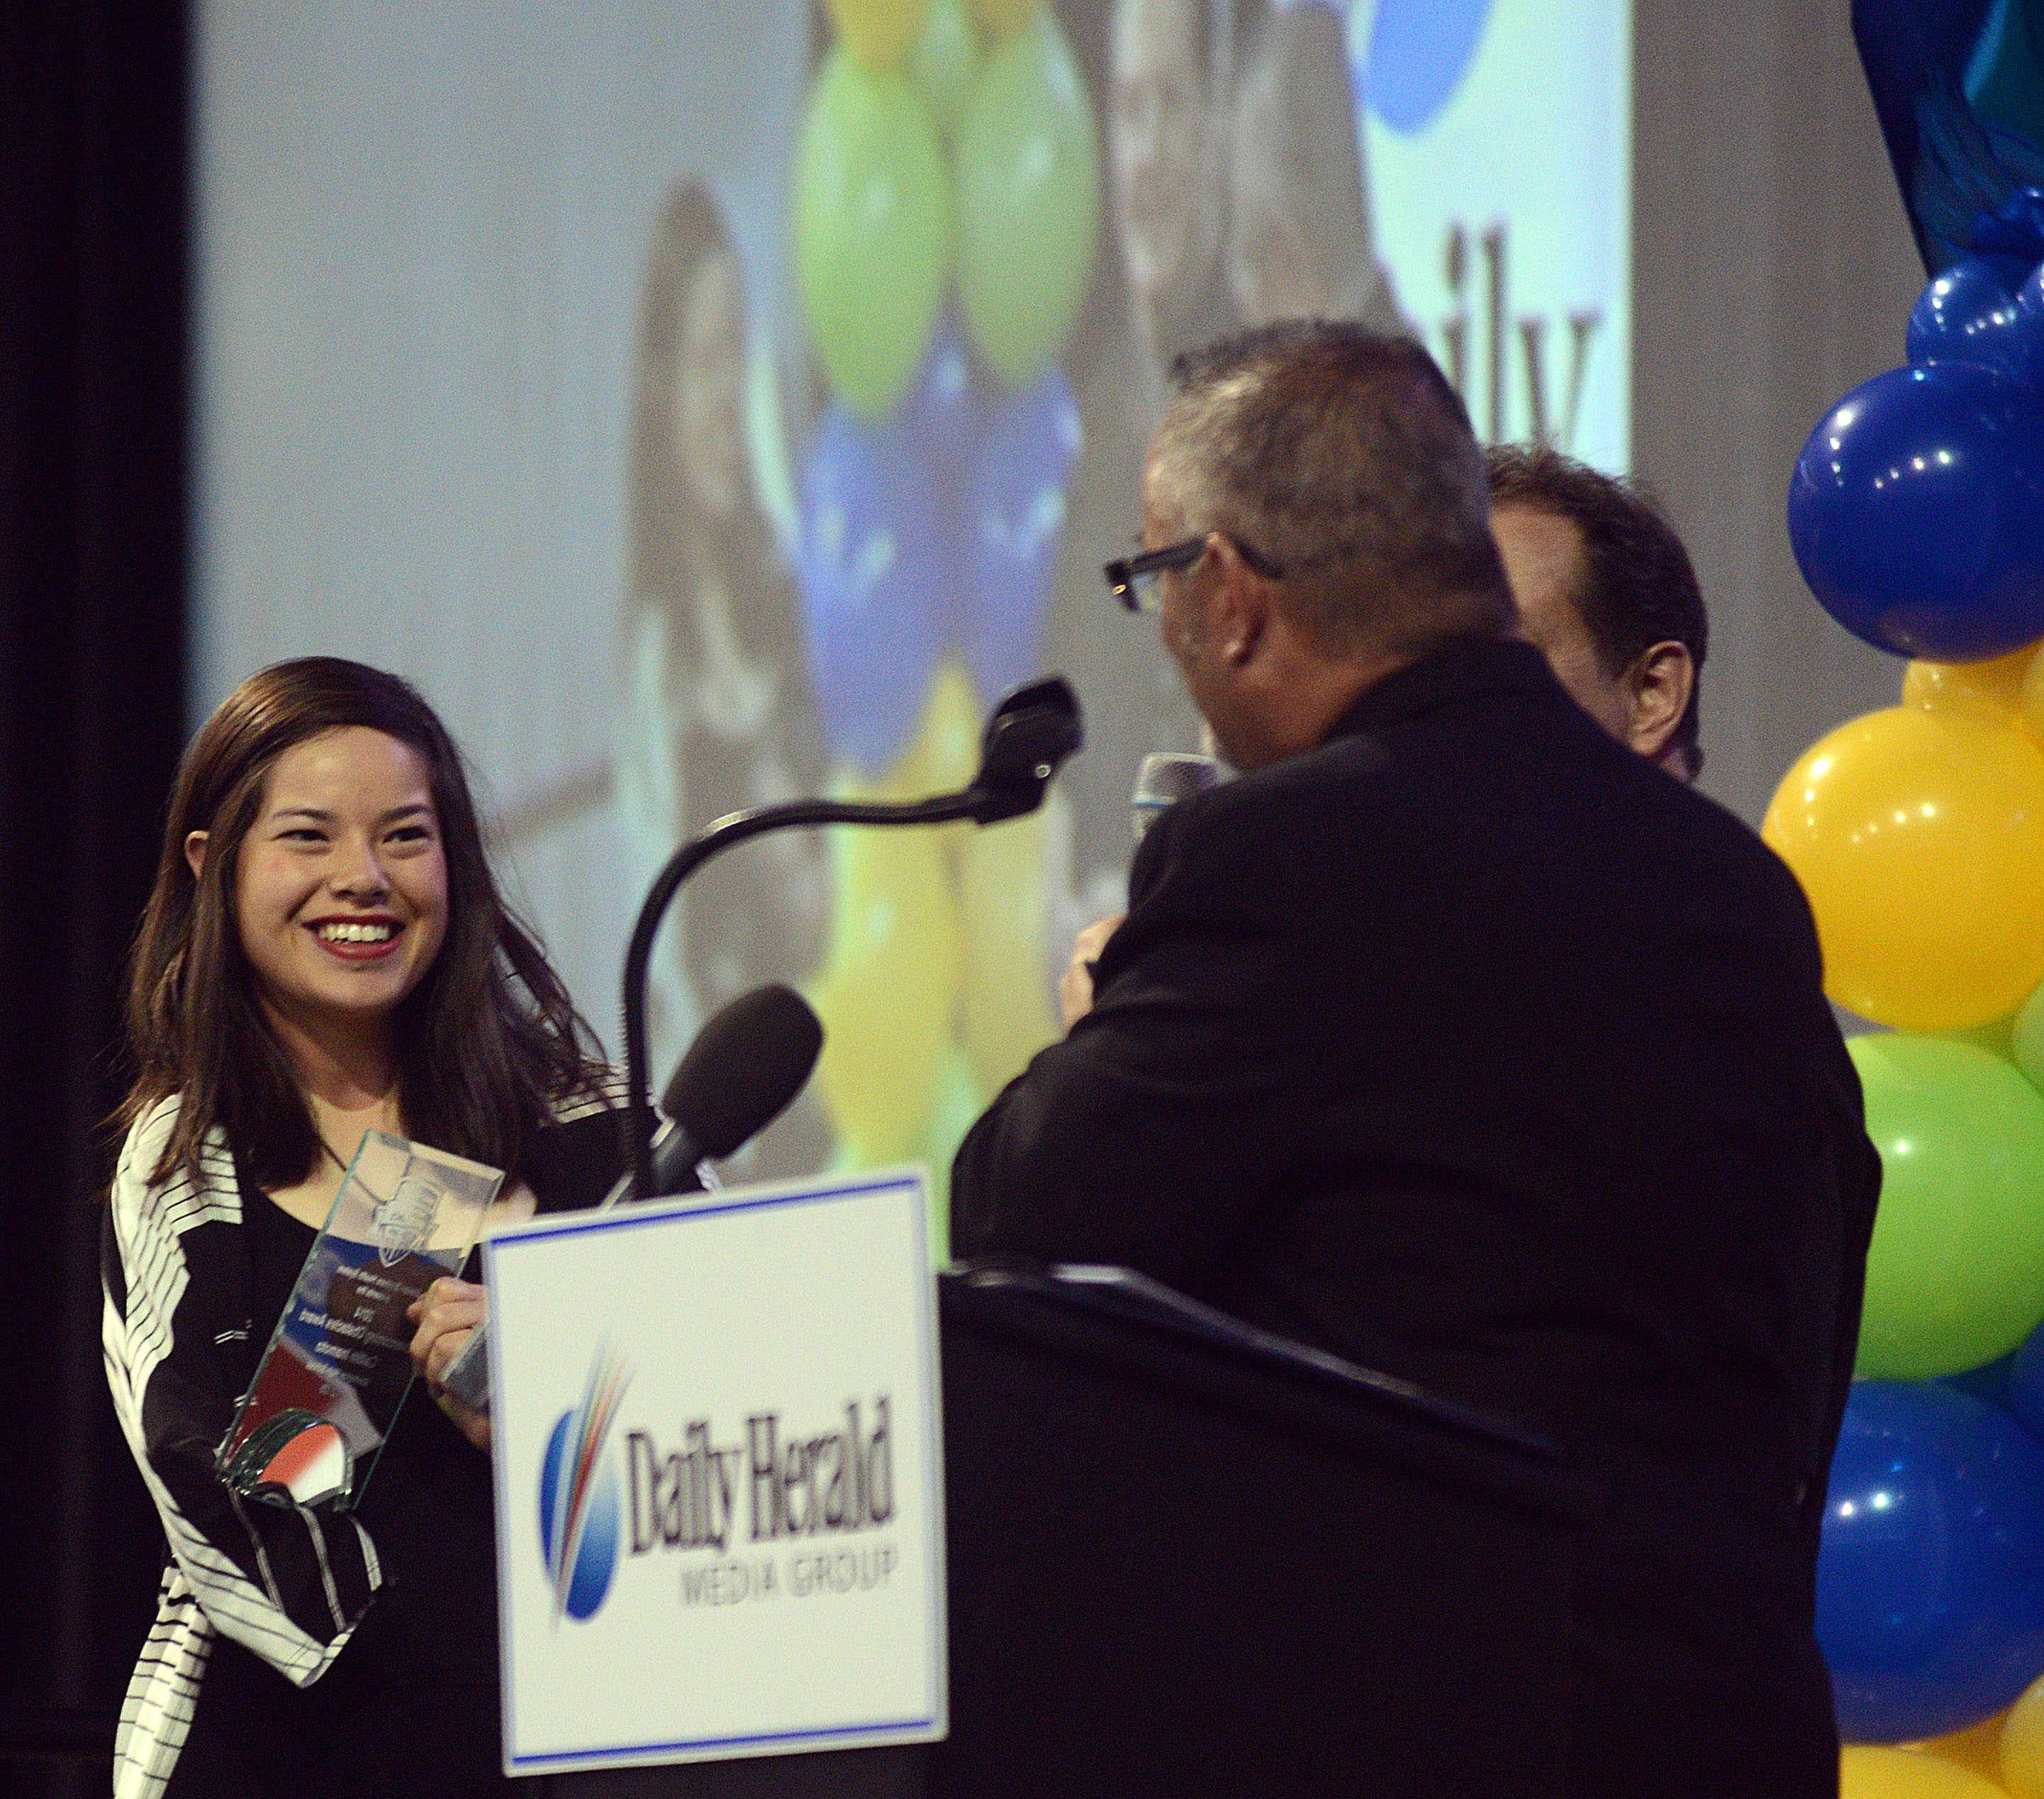 Caitlin Inamoto of Barrington High School, left, receives an Overcoming Obstacles Award during the Daily Herald Prep Sports Excellence banquet at the Sears Centre Arena in Hoffman Estates. Inamoto, who was born with the full use of just one of her arms, excels in softball.